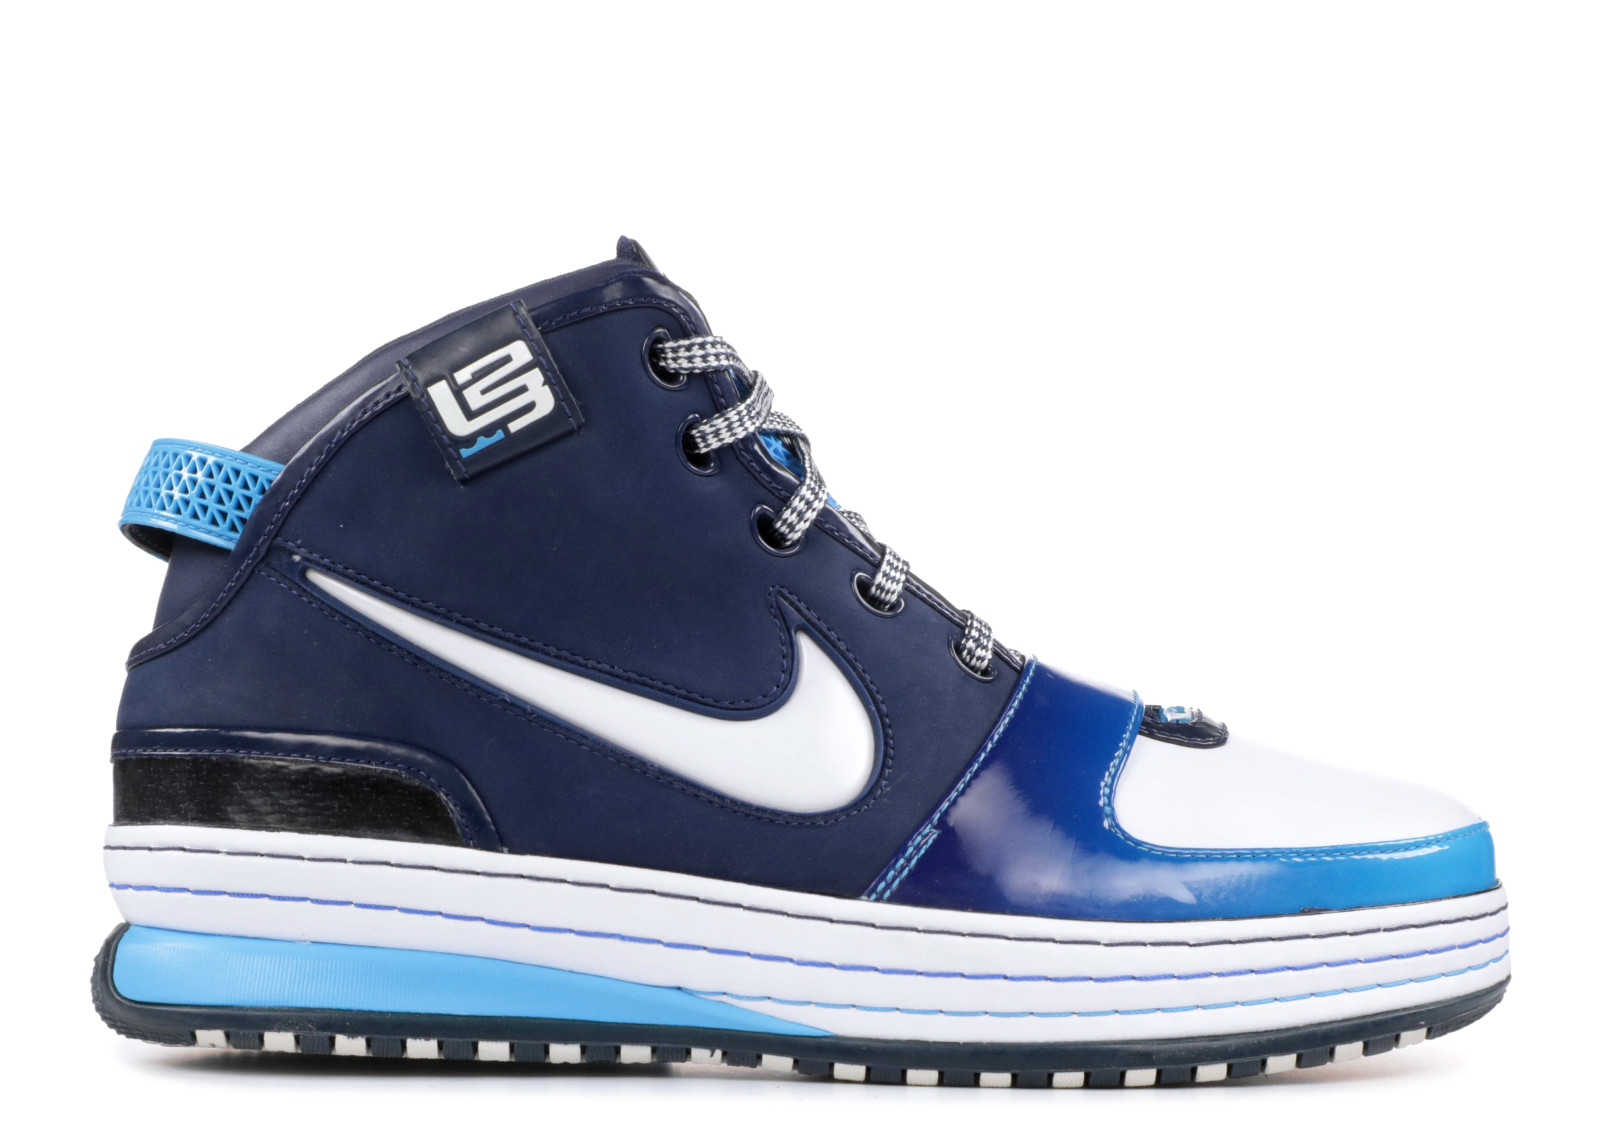 LeBron James: Zoom LeBron VI All-Star